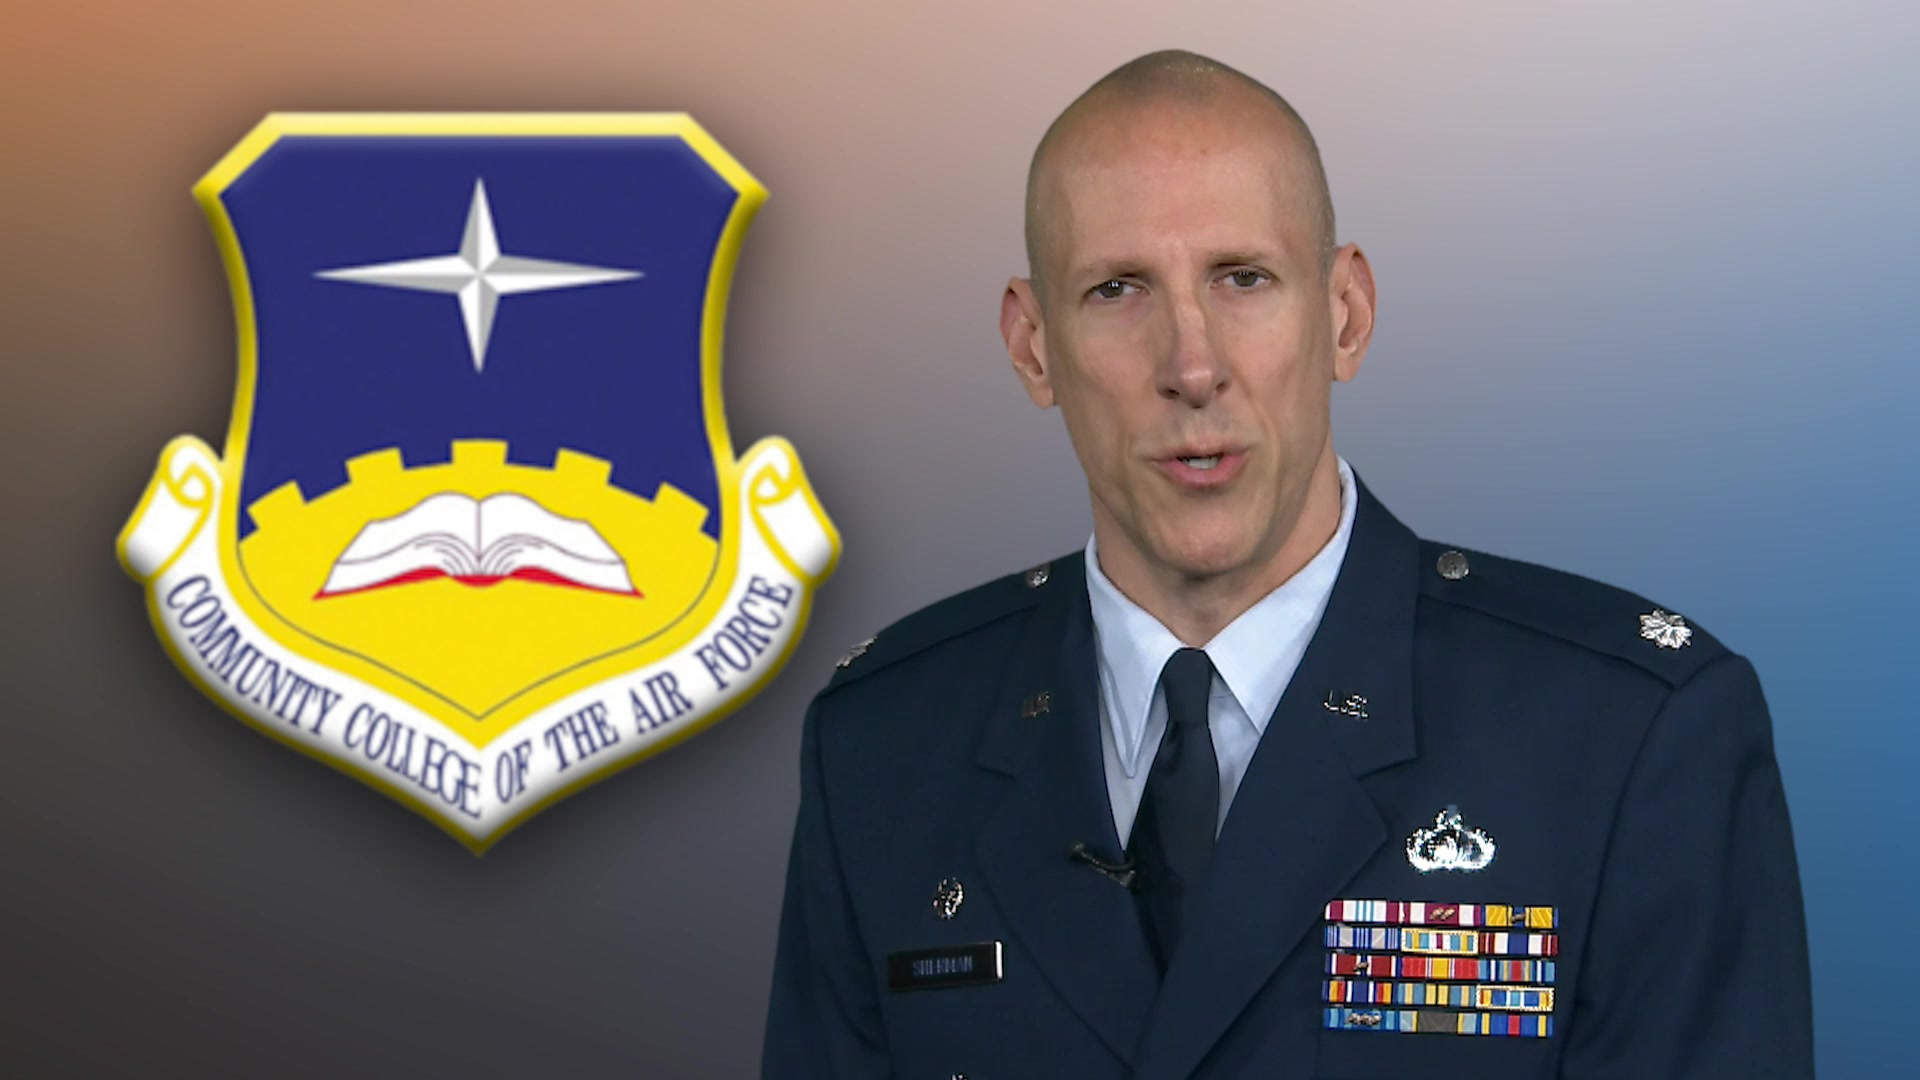 Commander's Introduction Video for CCAF Website.